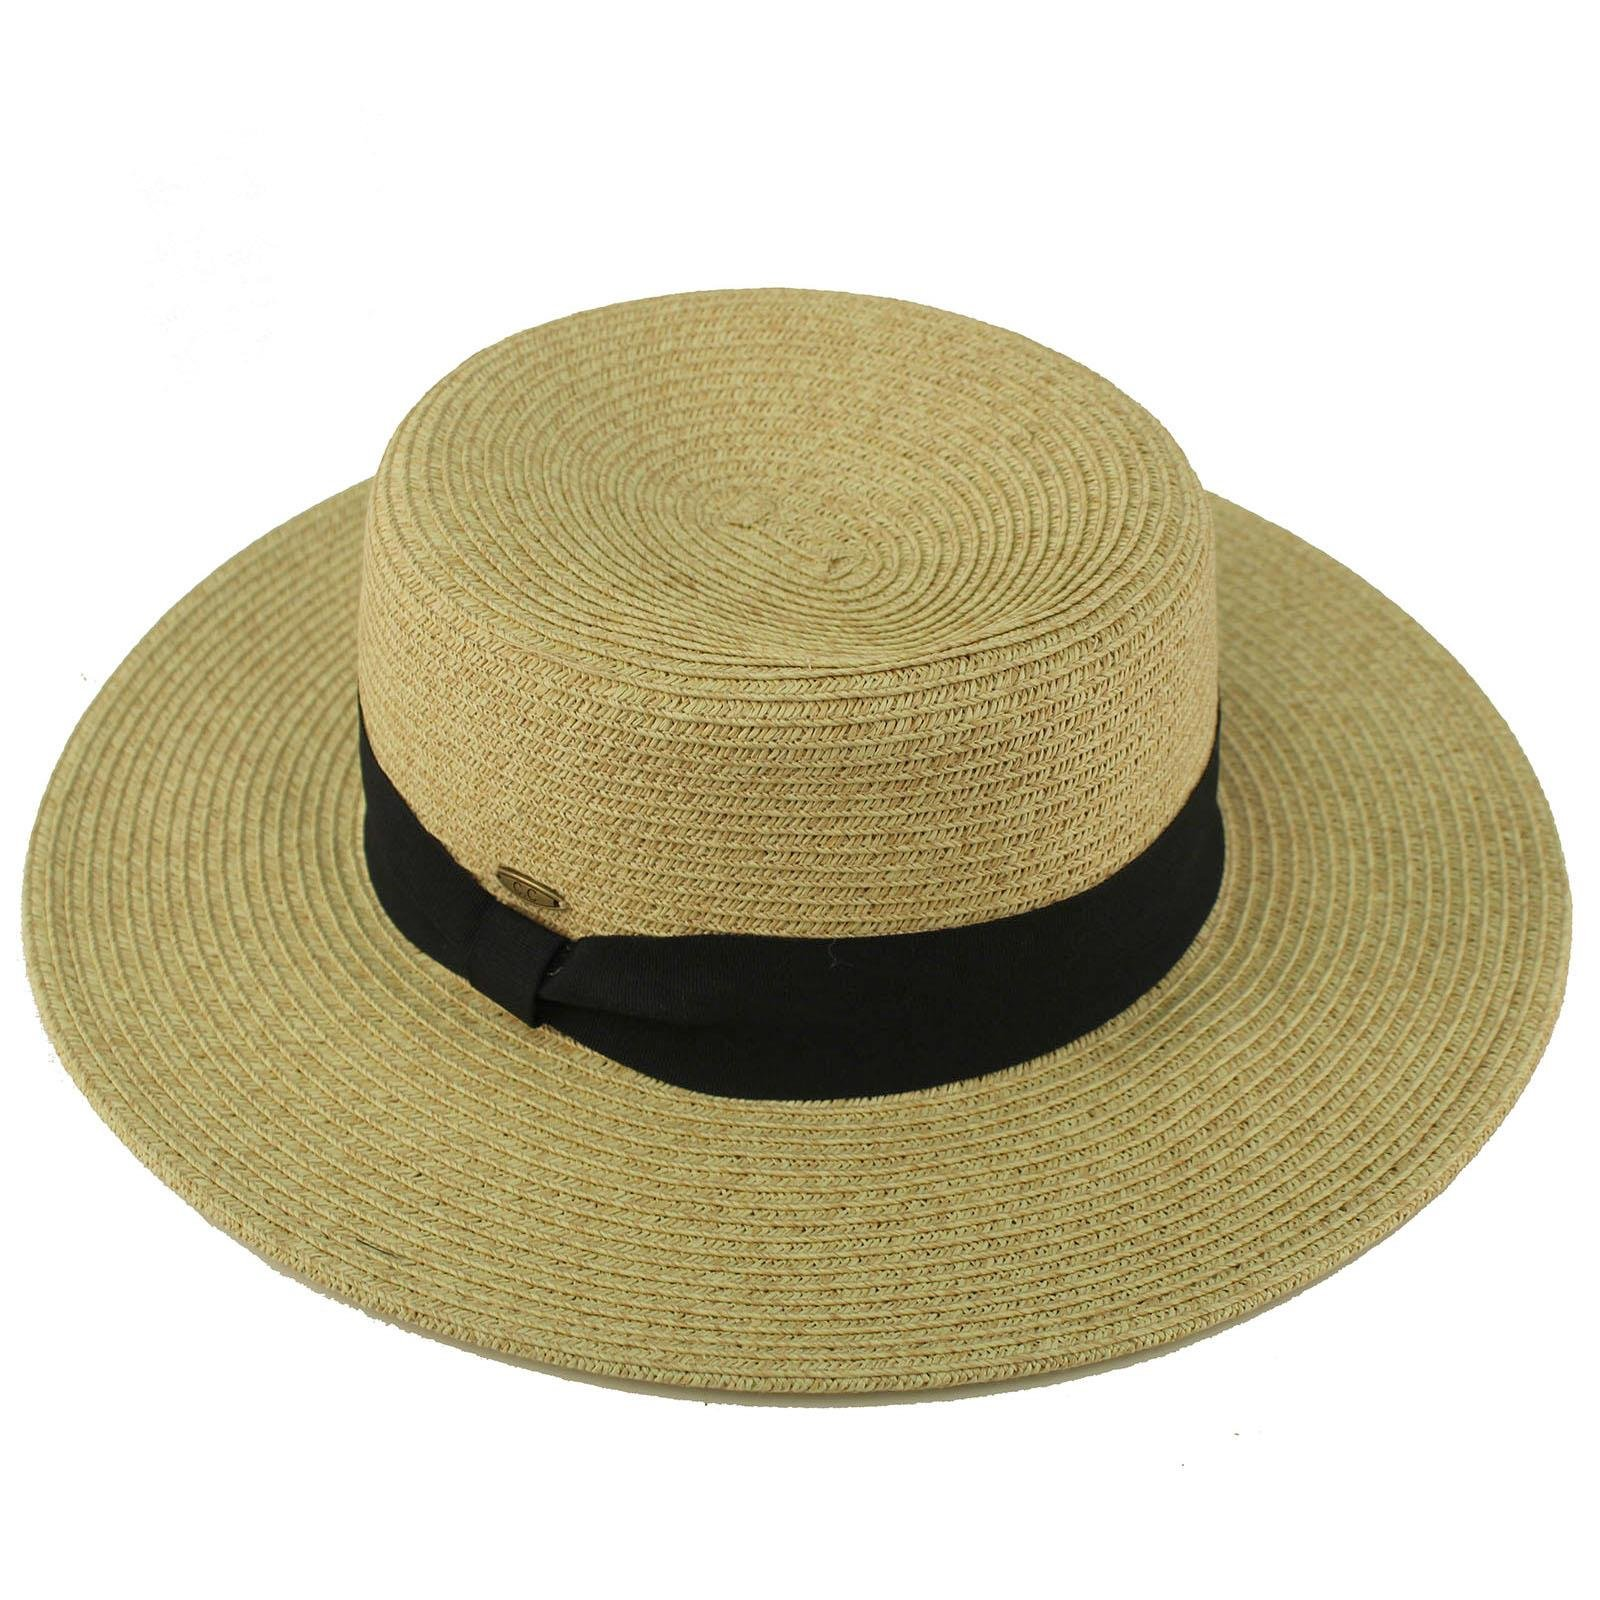 C.C Unisex Grosgrain Band Wide Porkpie Boater Derby Flat Top Fedora Sun Hat Lt. Natural/Black